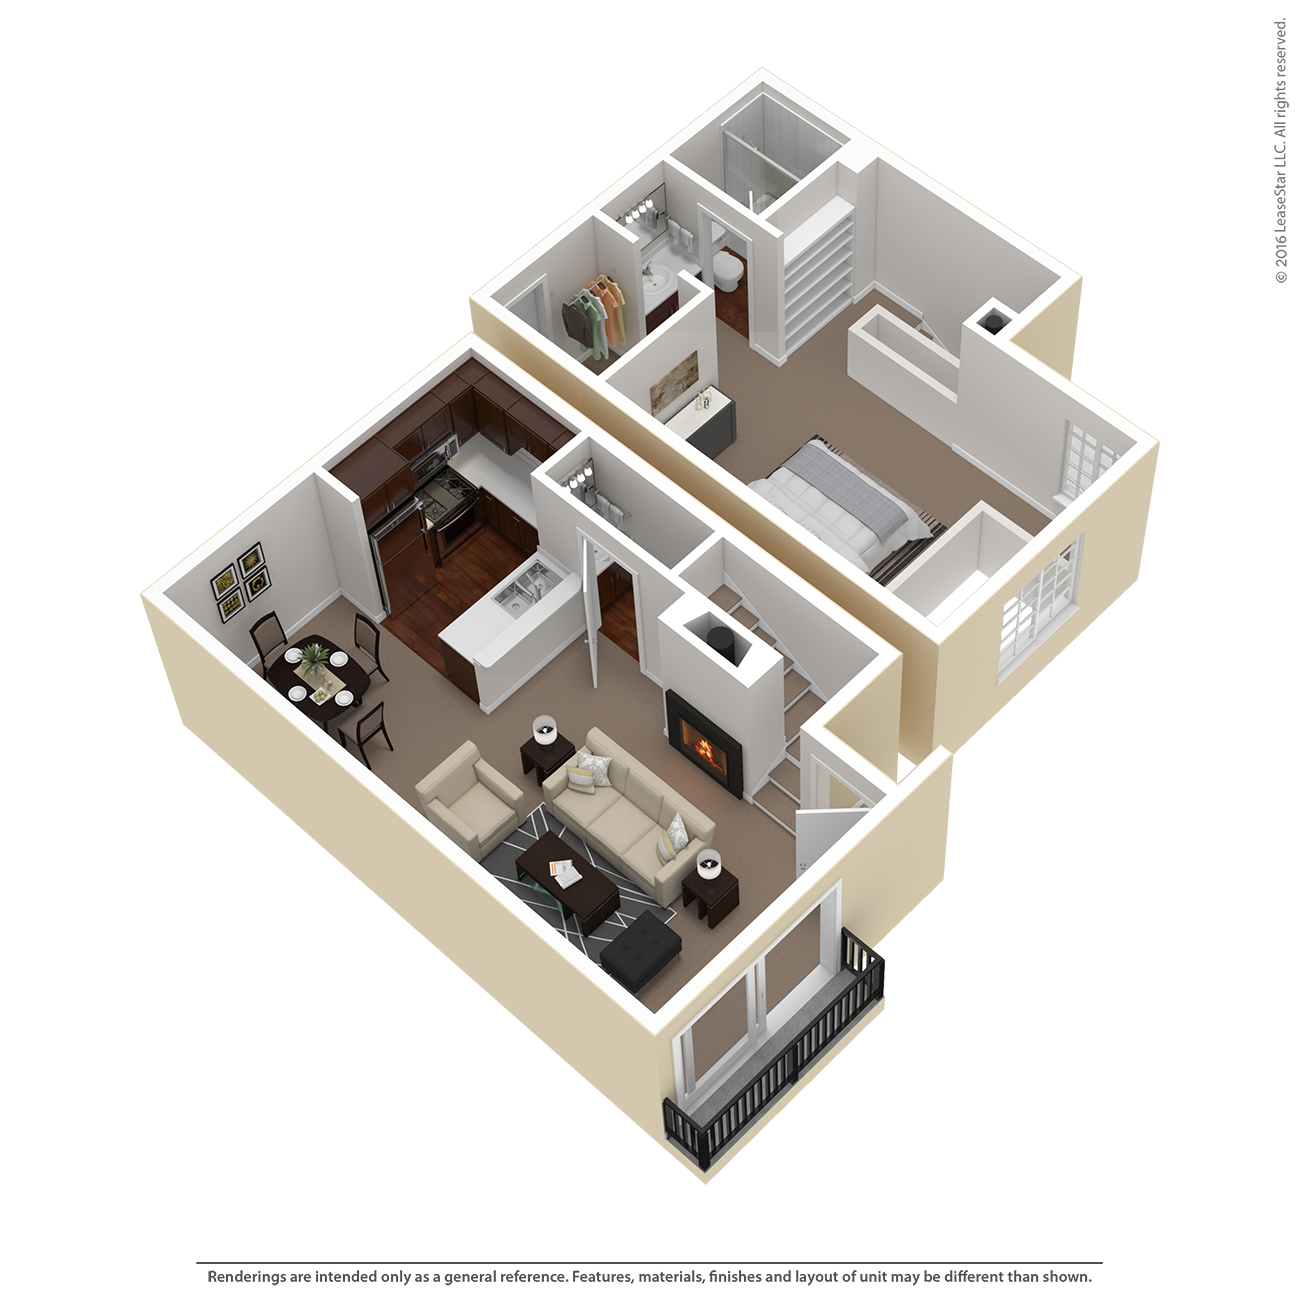 1 Bed 1.5 Bath Townhouse Plan C Floor Plan 2